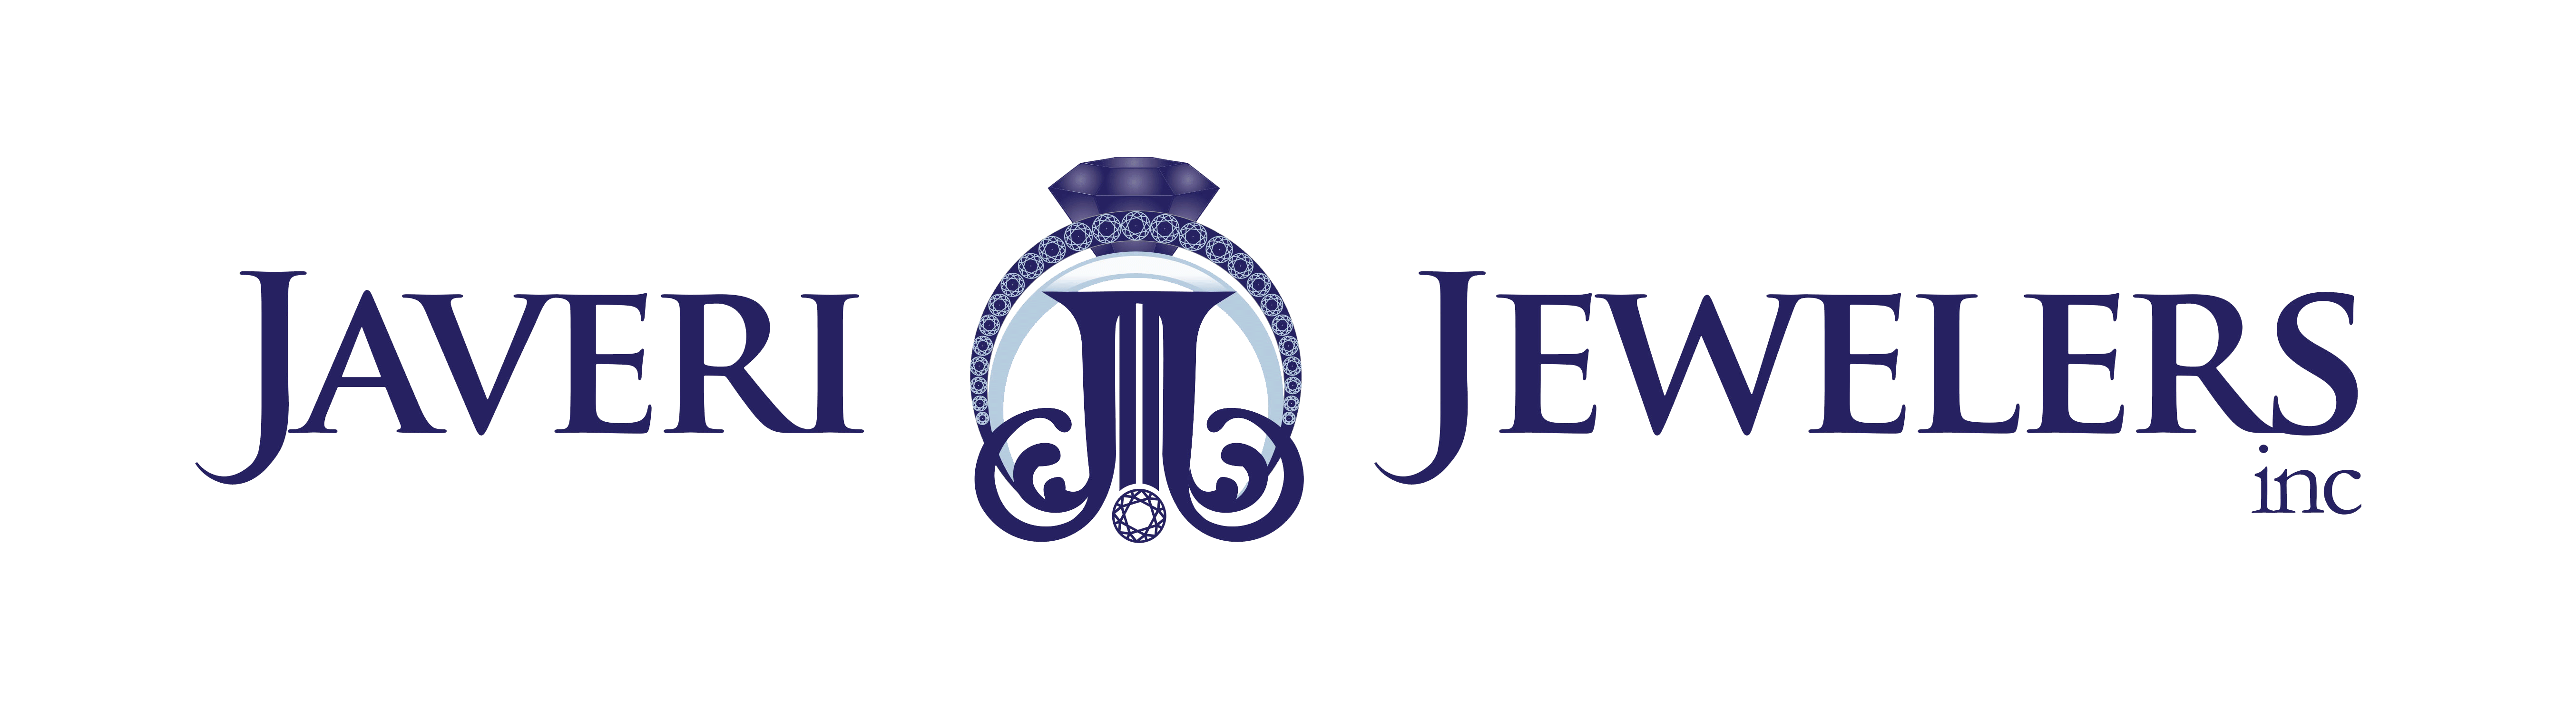 Javeri Jewelers Inc logo